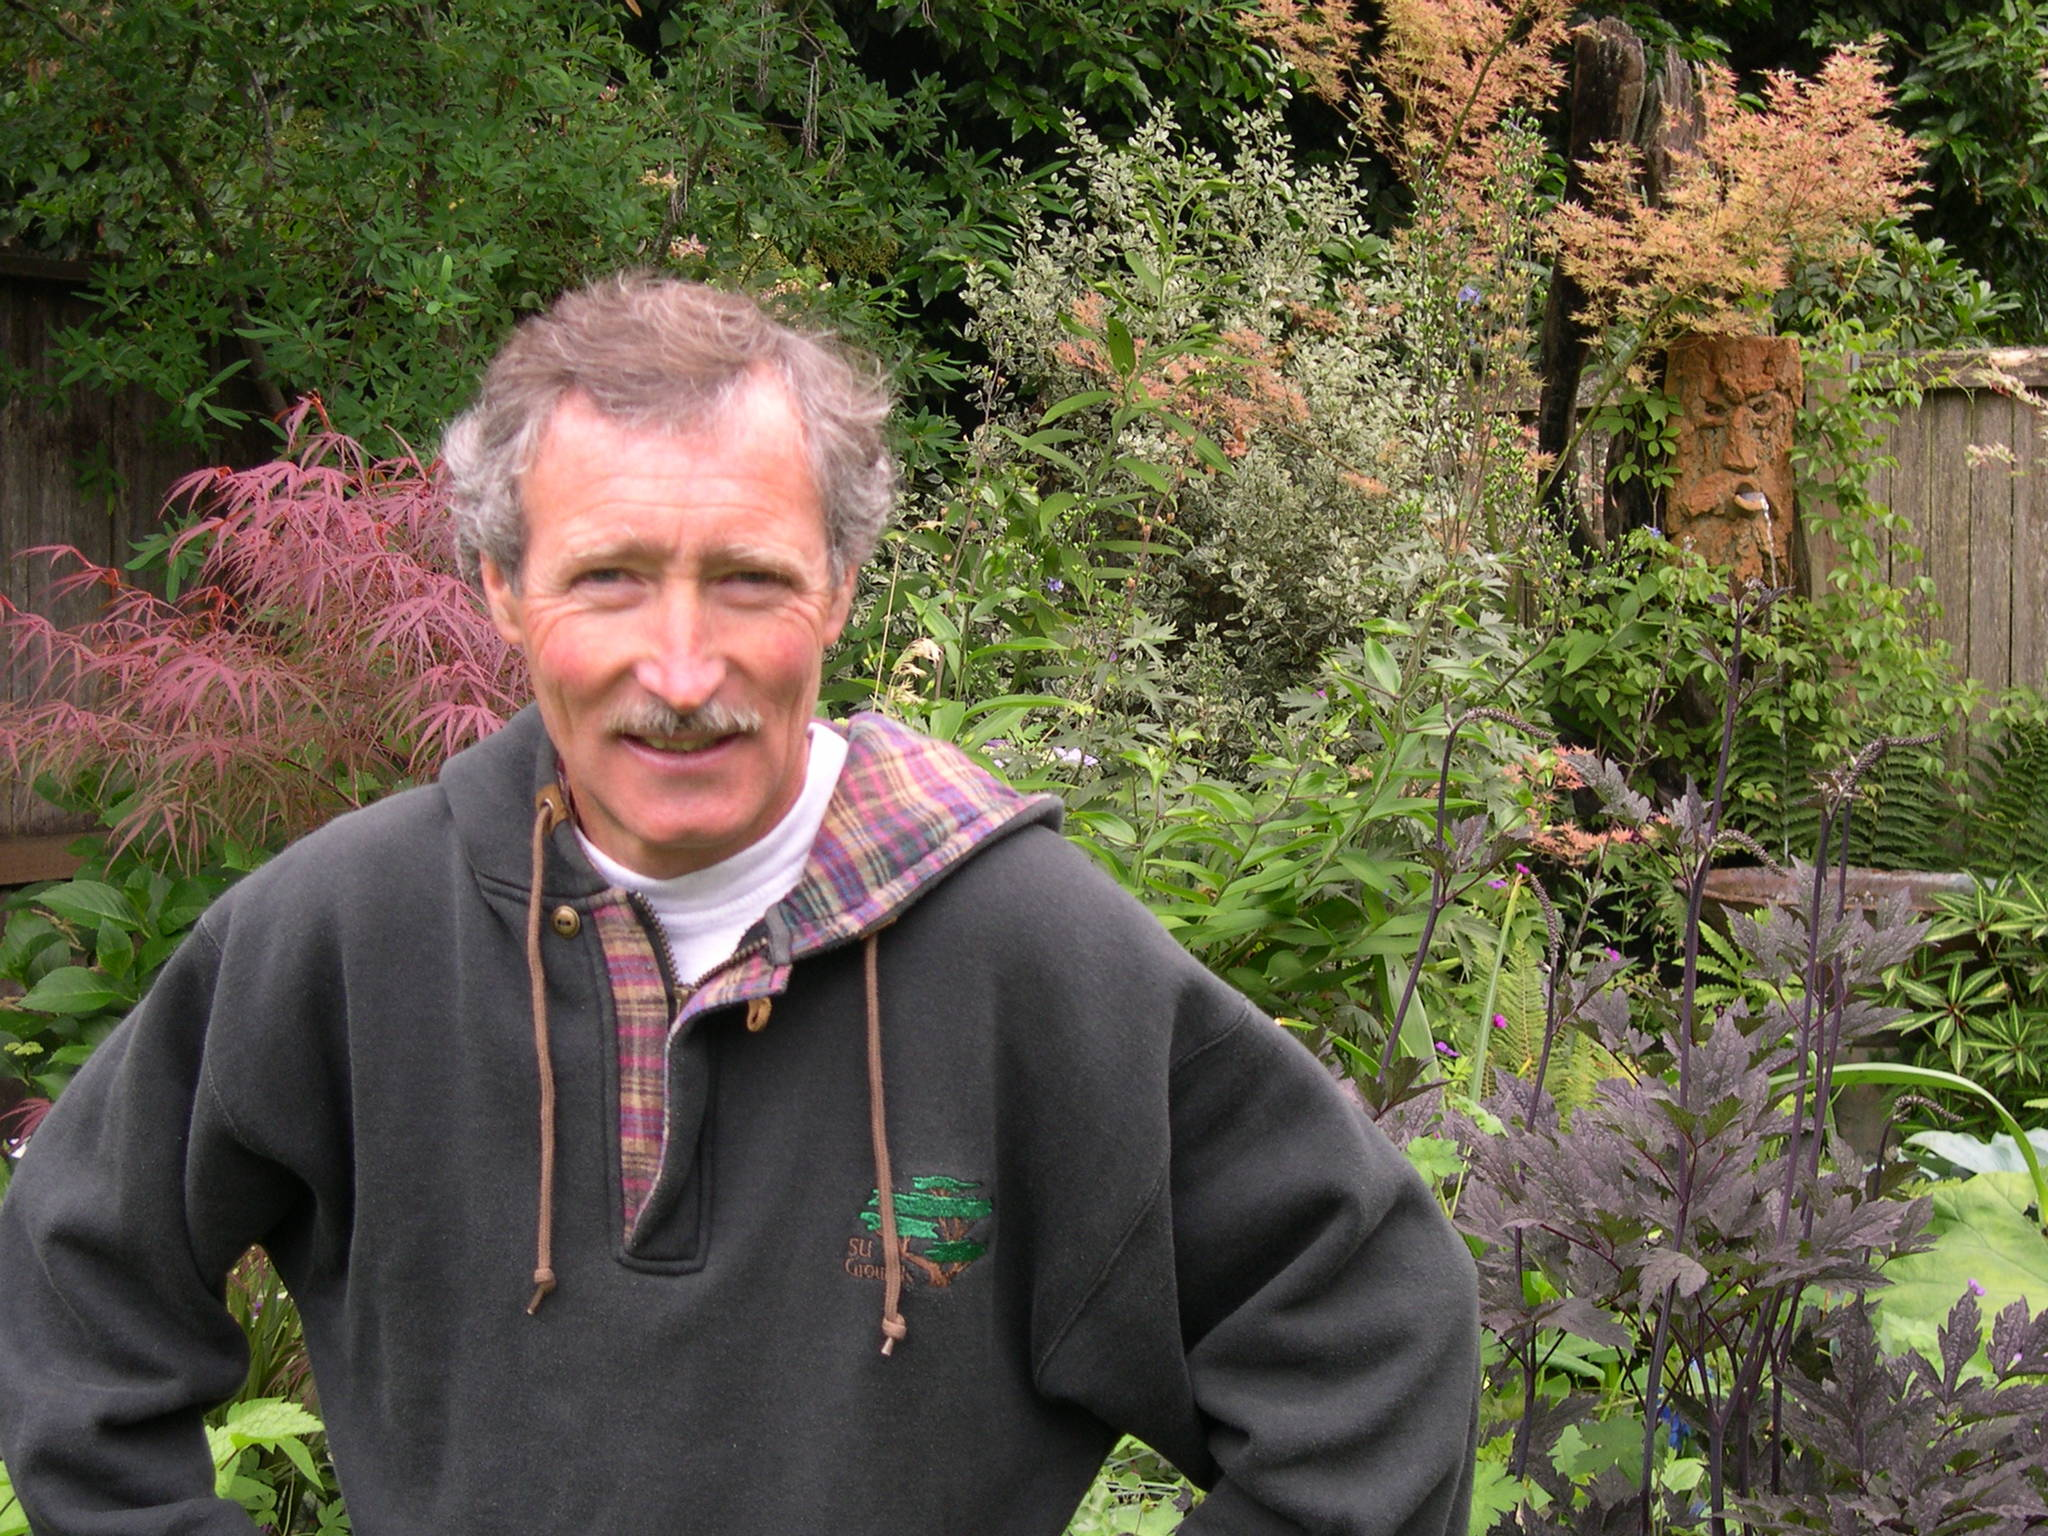 Gardeners Weekend explores challenging local climate